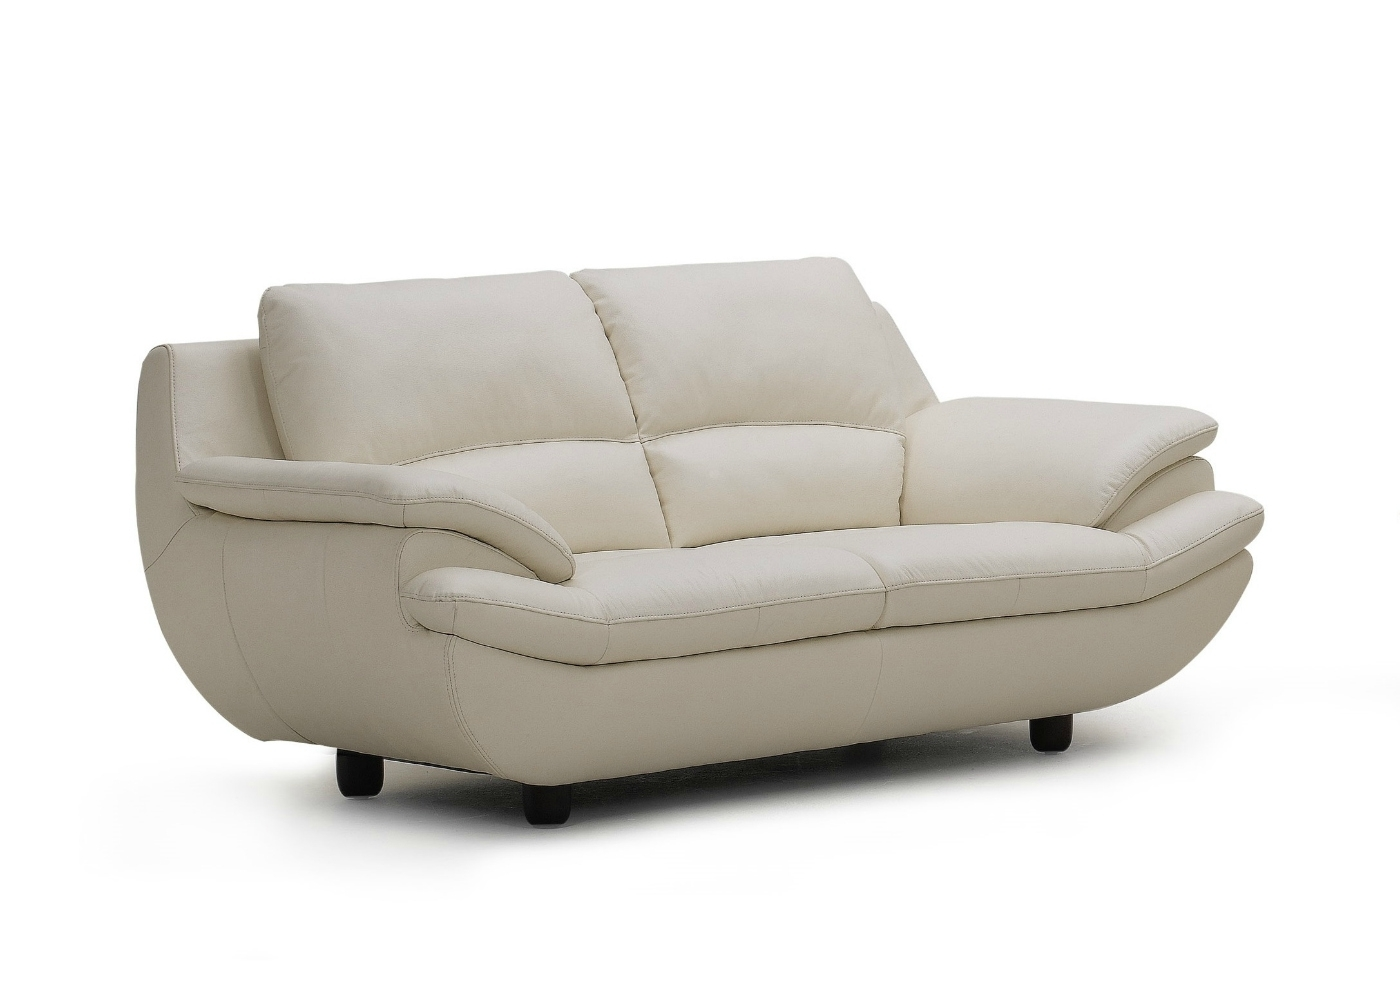 Plush Leather Sofa In Off White - Not Just Brown with regard to Off White Leather Sofas (Image 8 of 10)